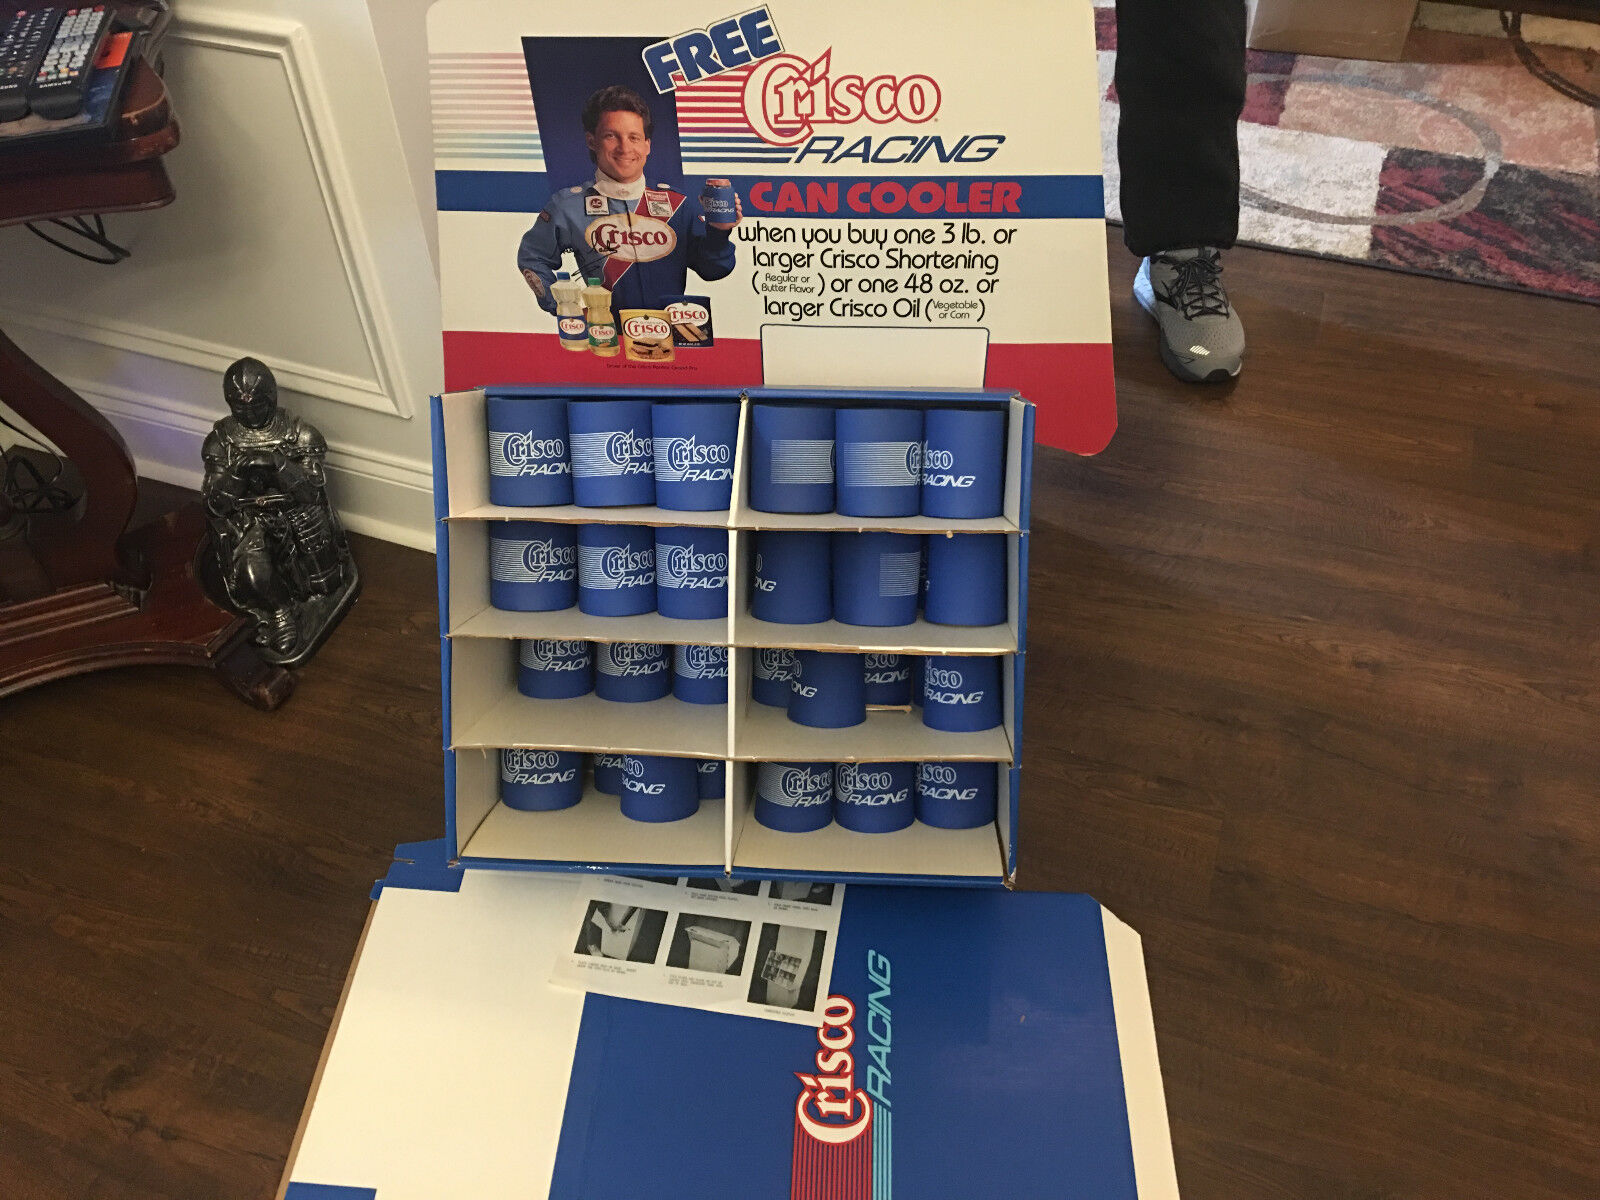 STORE DISPLAY STAND UP CRISCO NASCAR CAN COOLERS LOT LOT LOT OF 40 IN ORIGINAL BOX b133c2